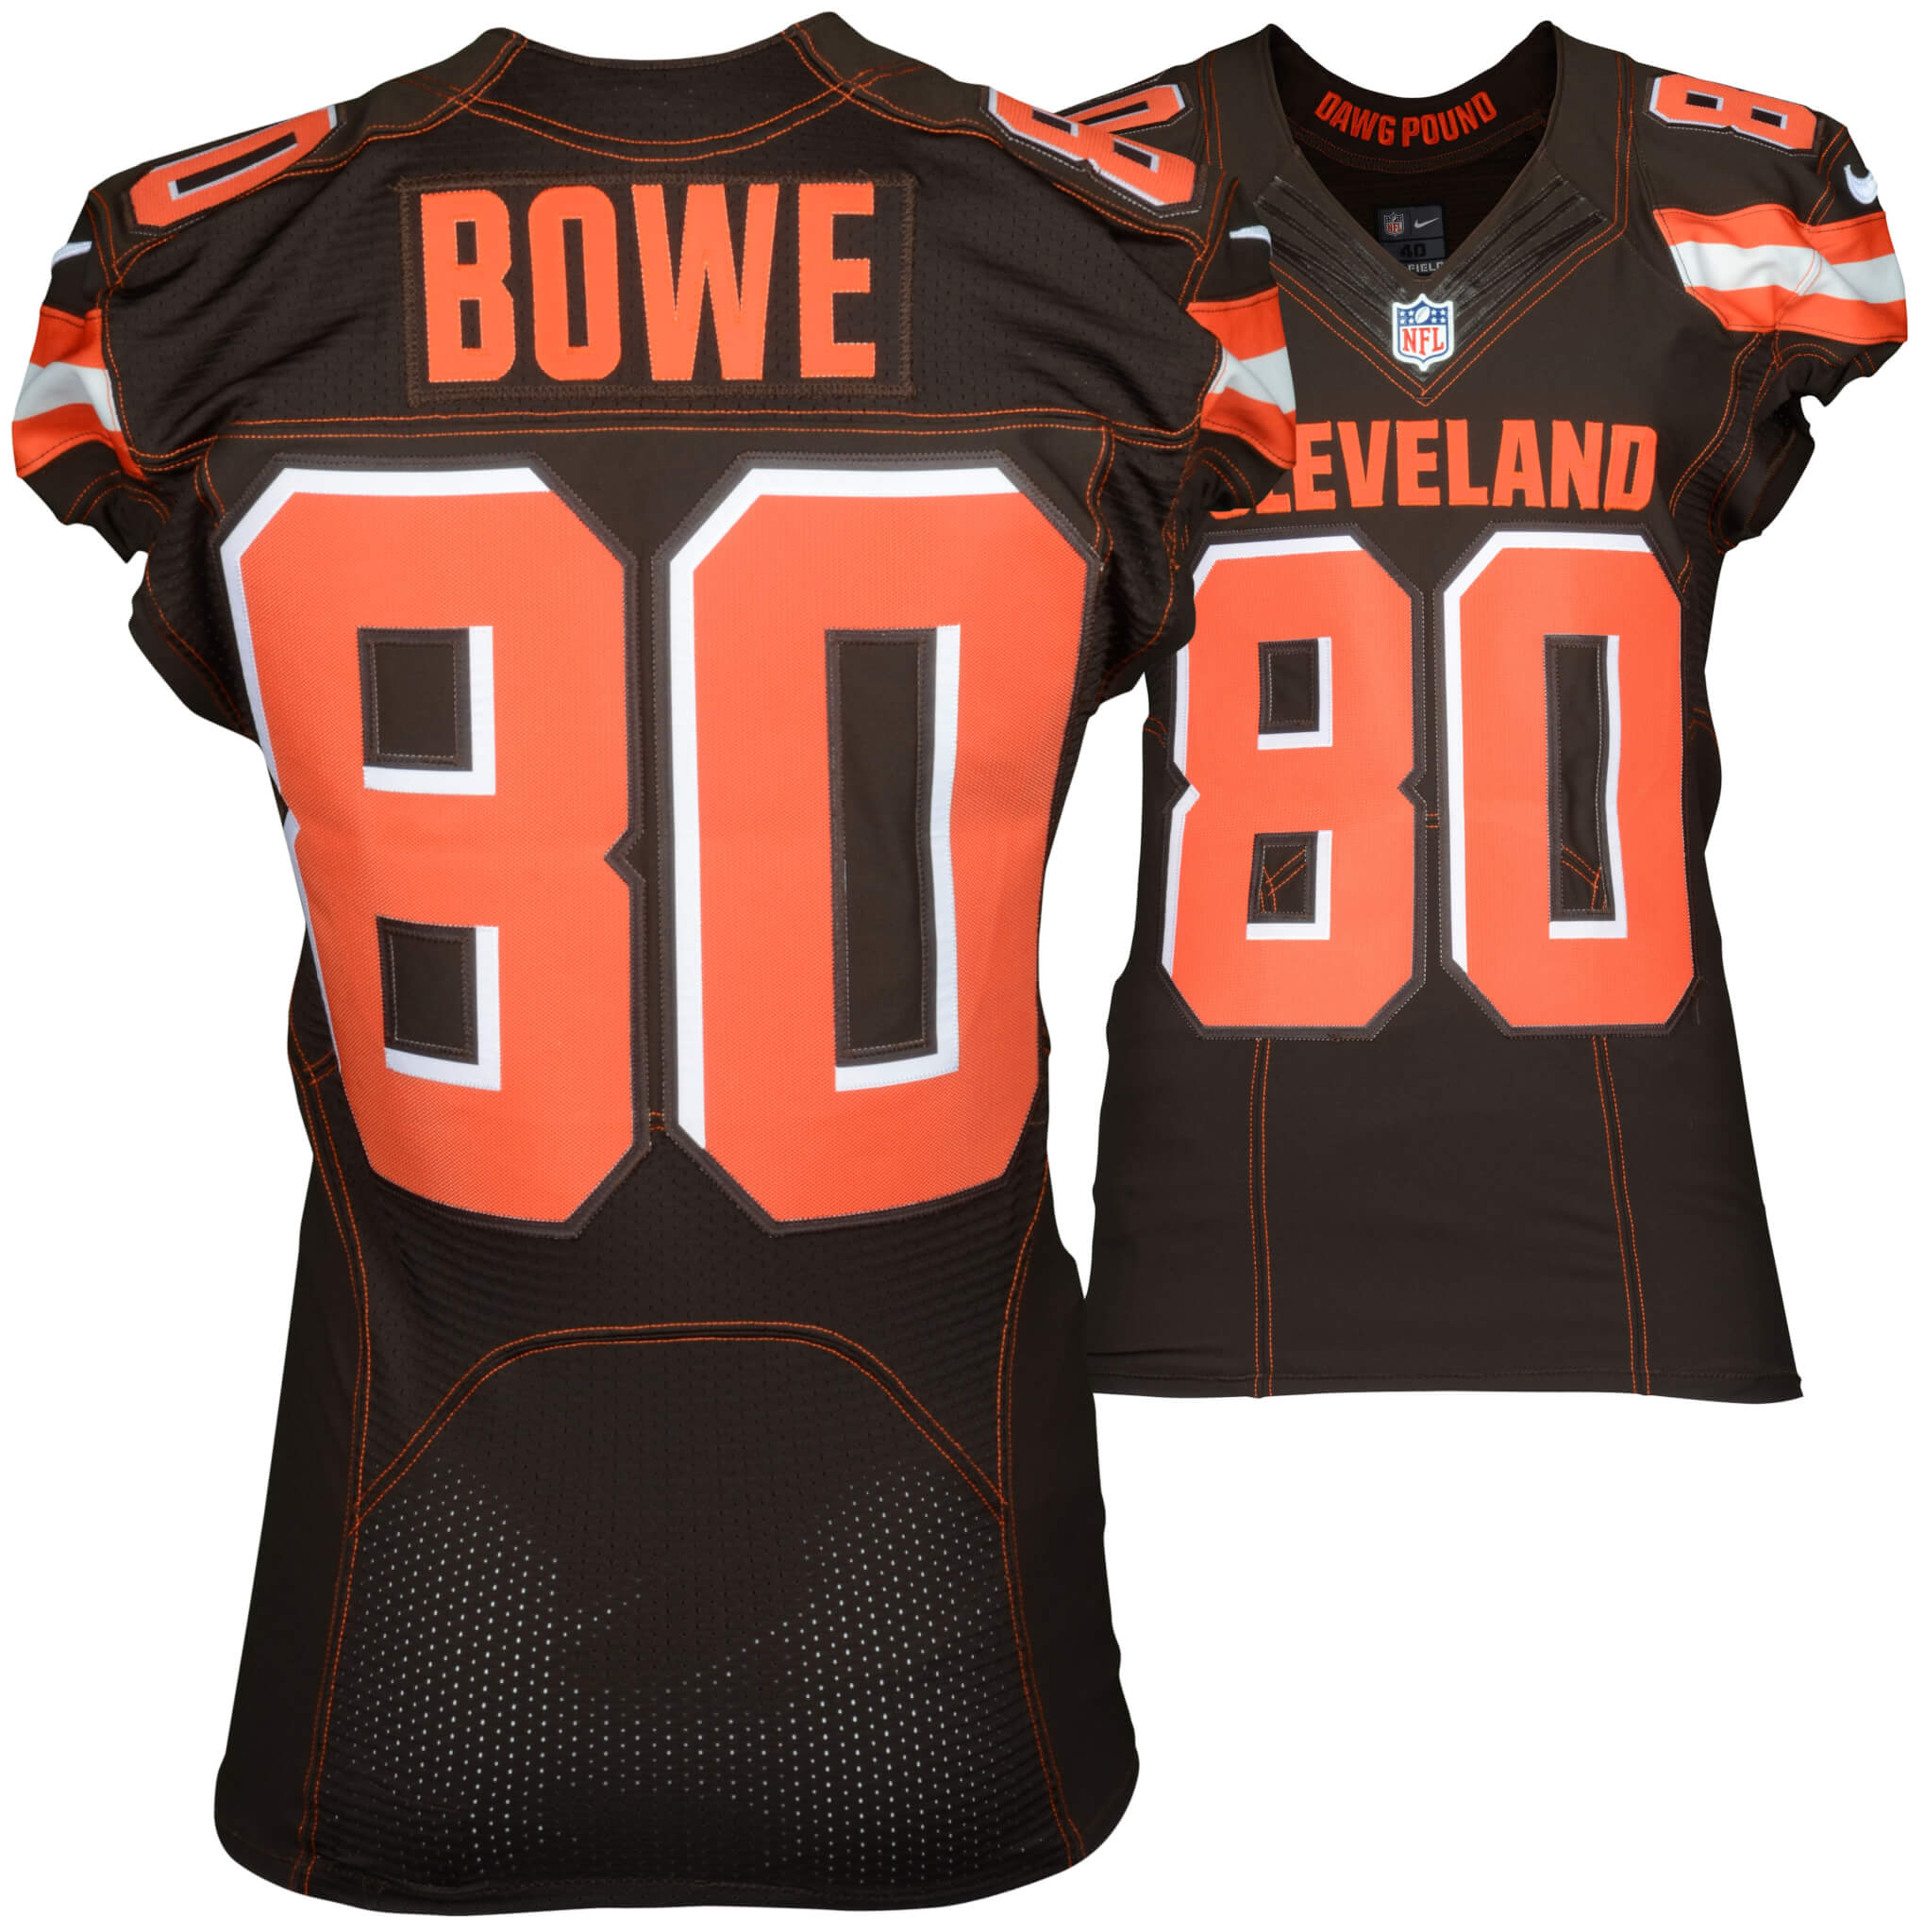 September 13, 2015 New York Jets vs. Cleveland Browns Dwayne Bowe  supplier